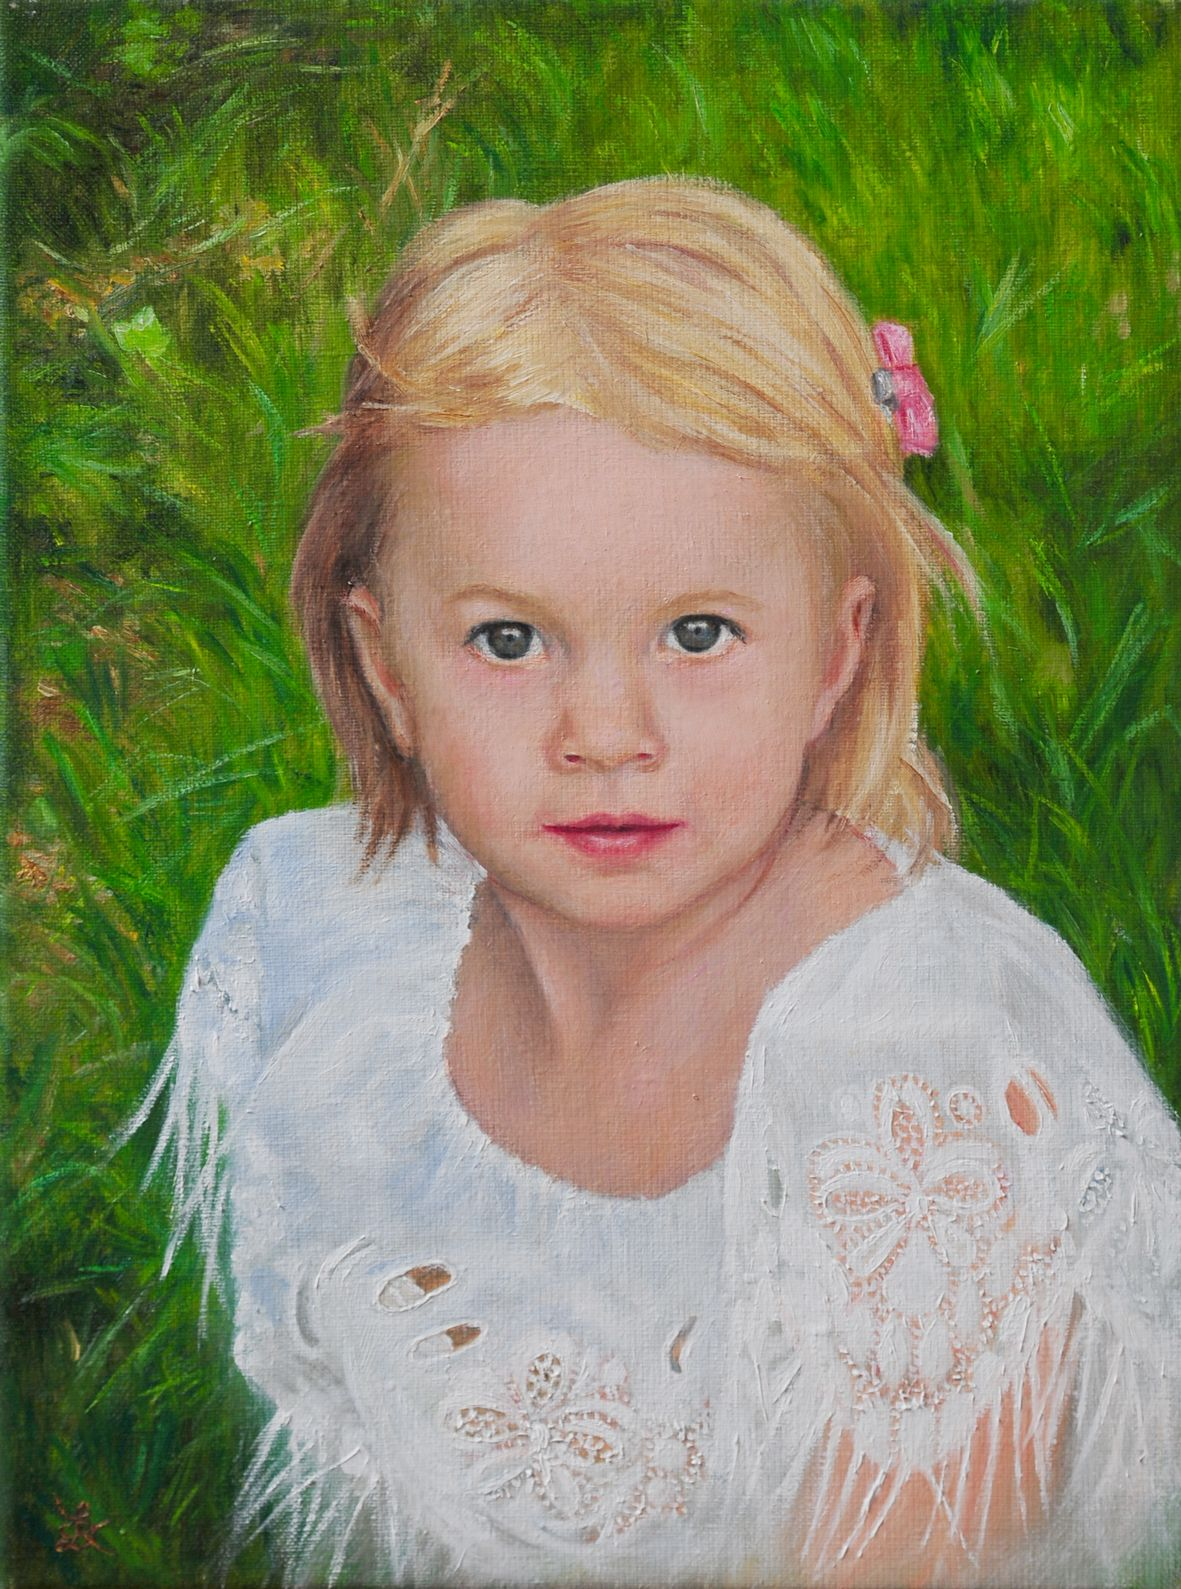 Little girl - oil on canvas